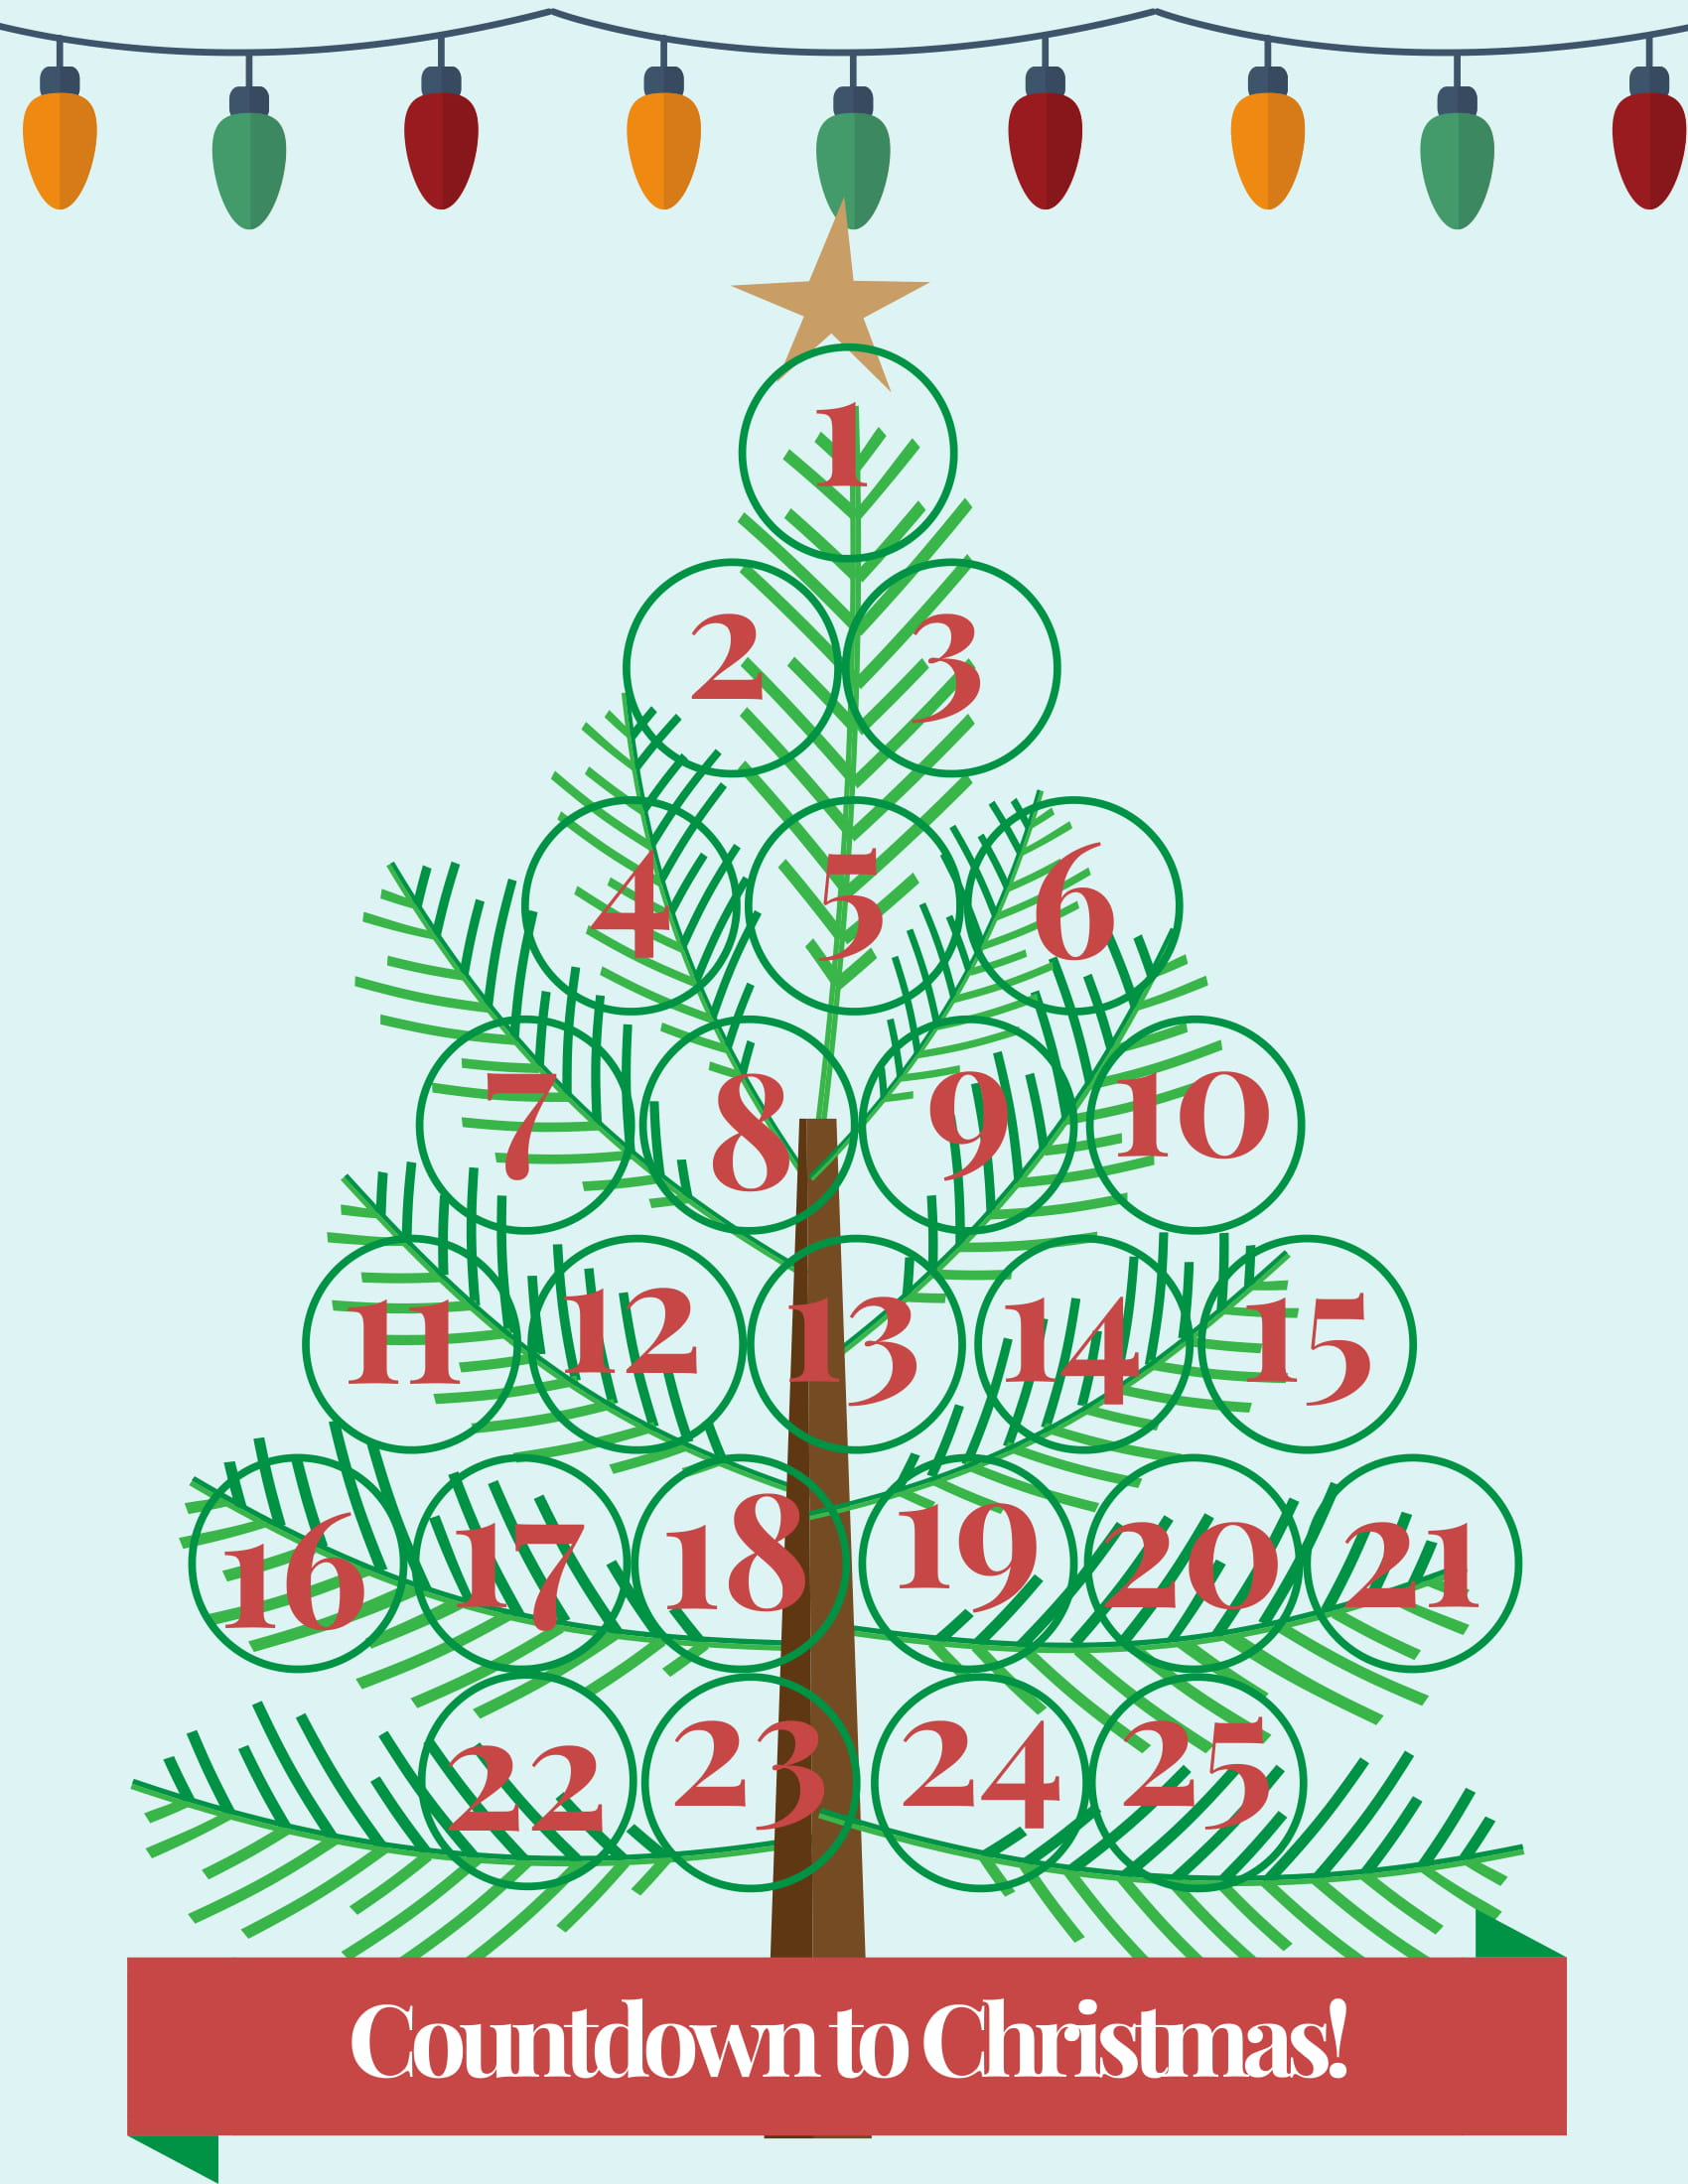 photo relating to Free Printable Christmas Tree named Countdown towards Xmas Totally free Printable -- Xmas Tree